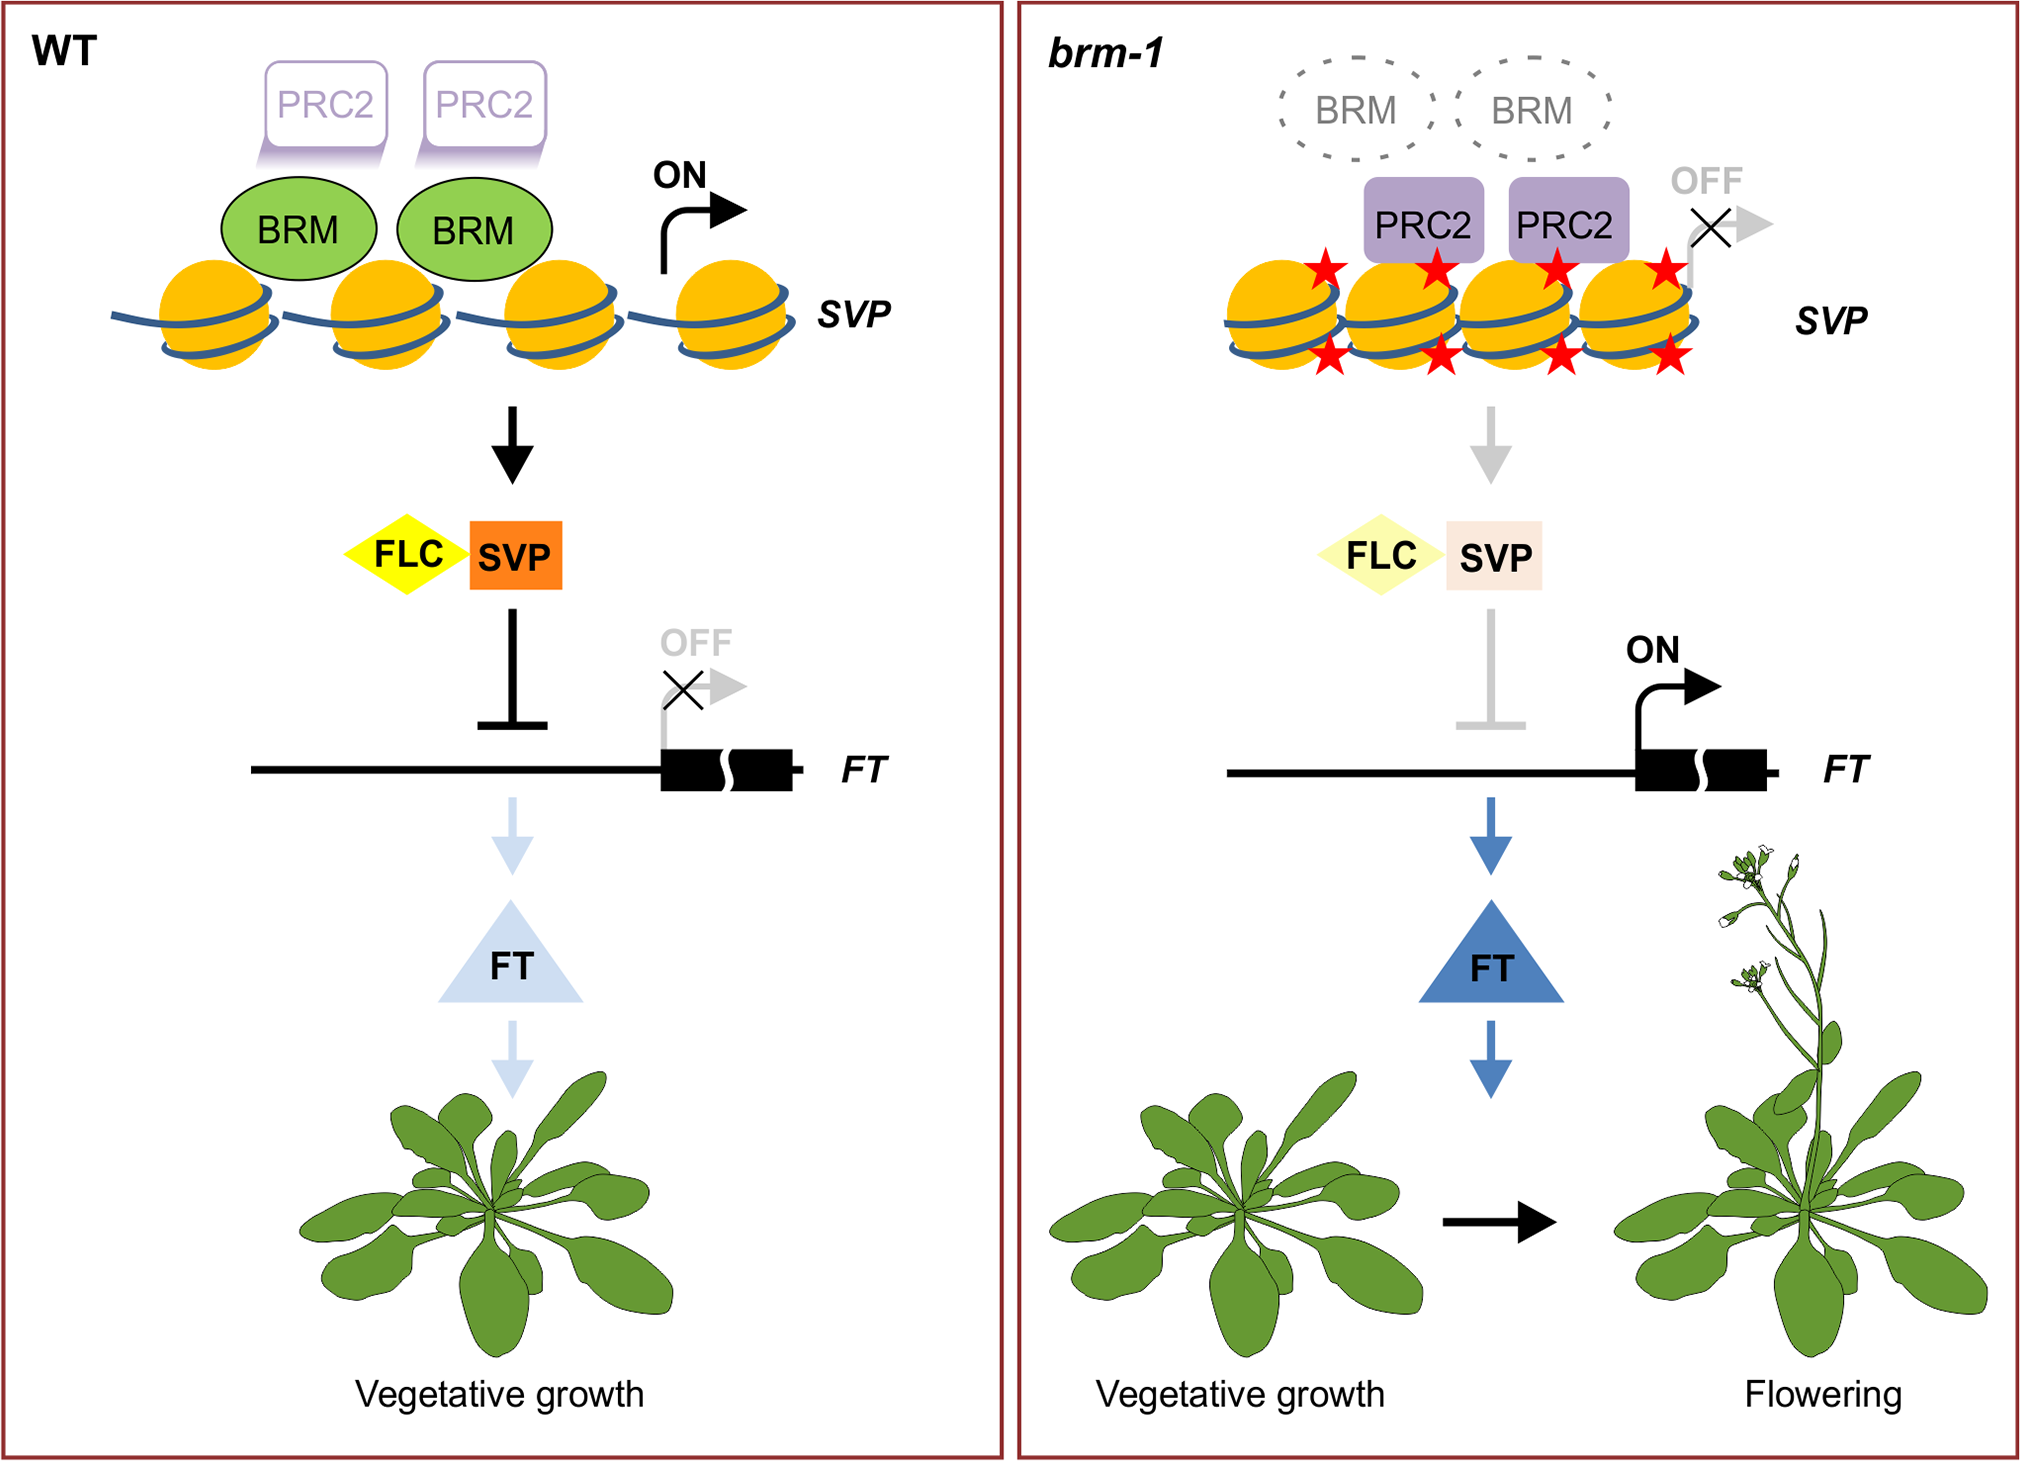 A model for BRM in preventing inappropriate PcG activities at <i>SVP</i> to promote vegetative growth.